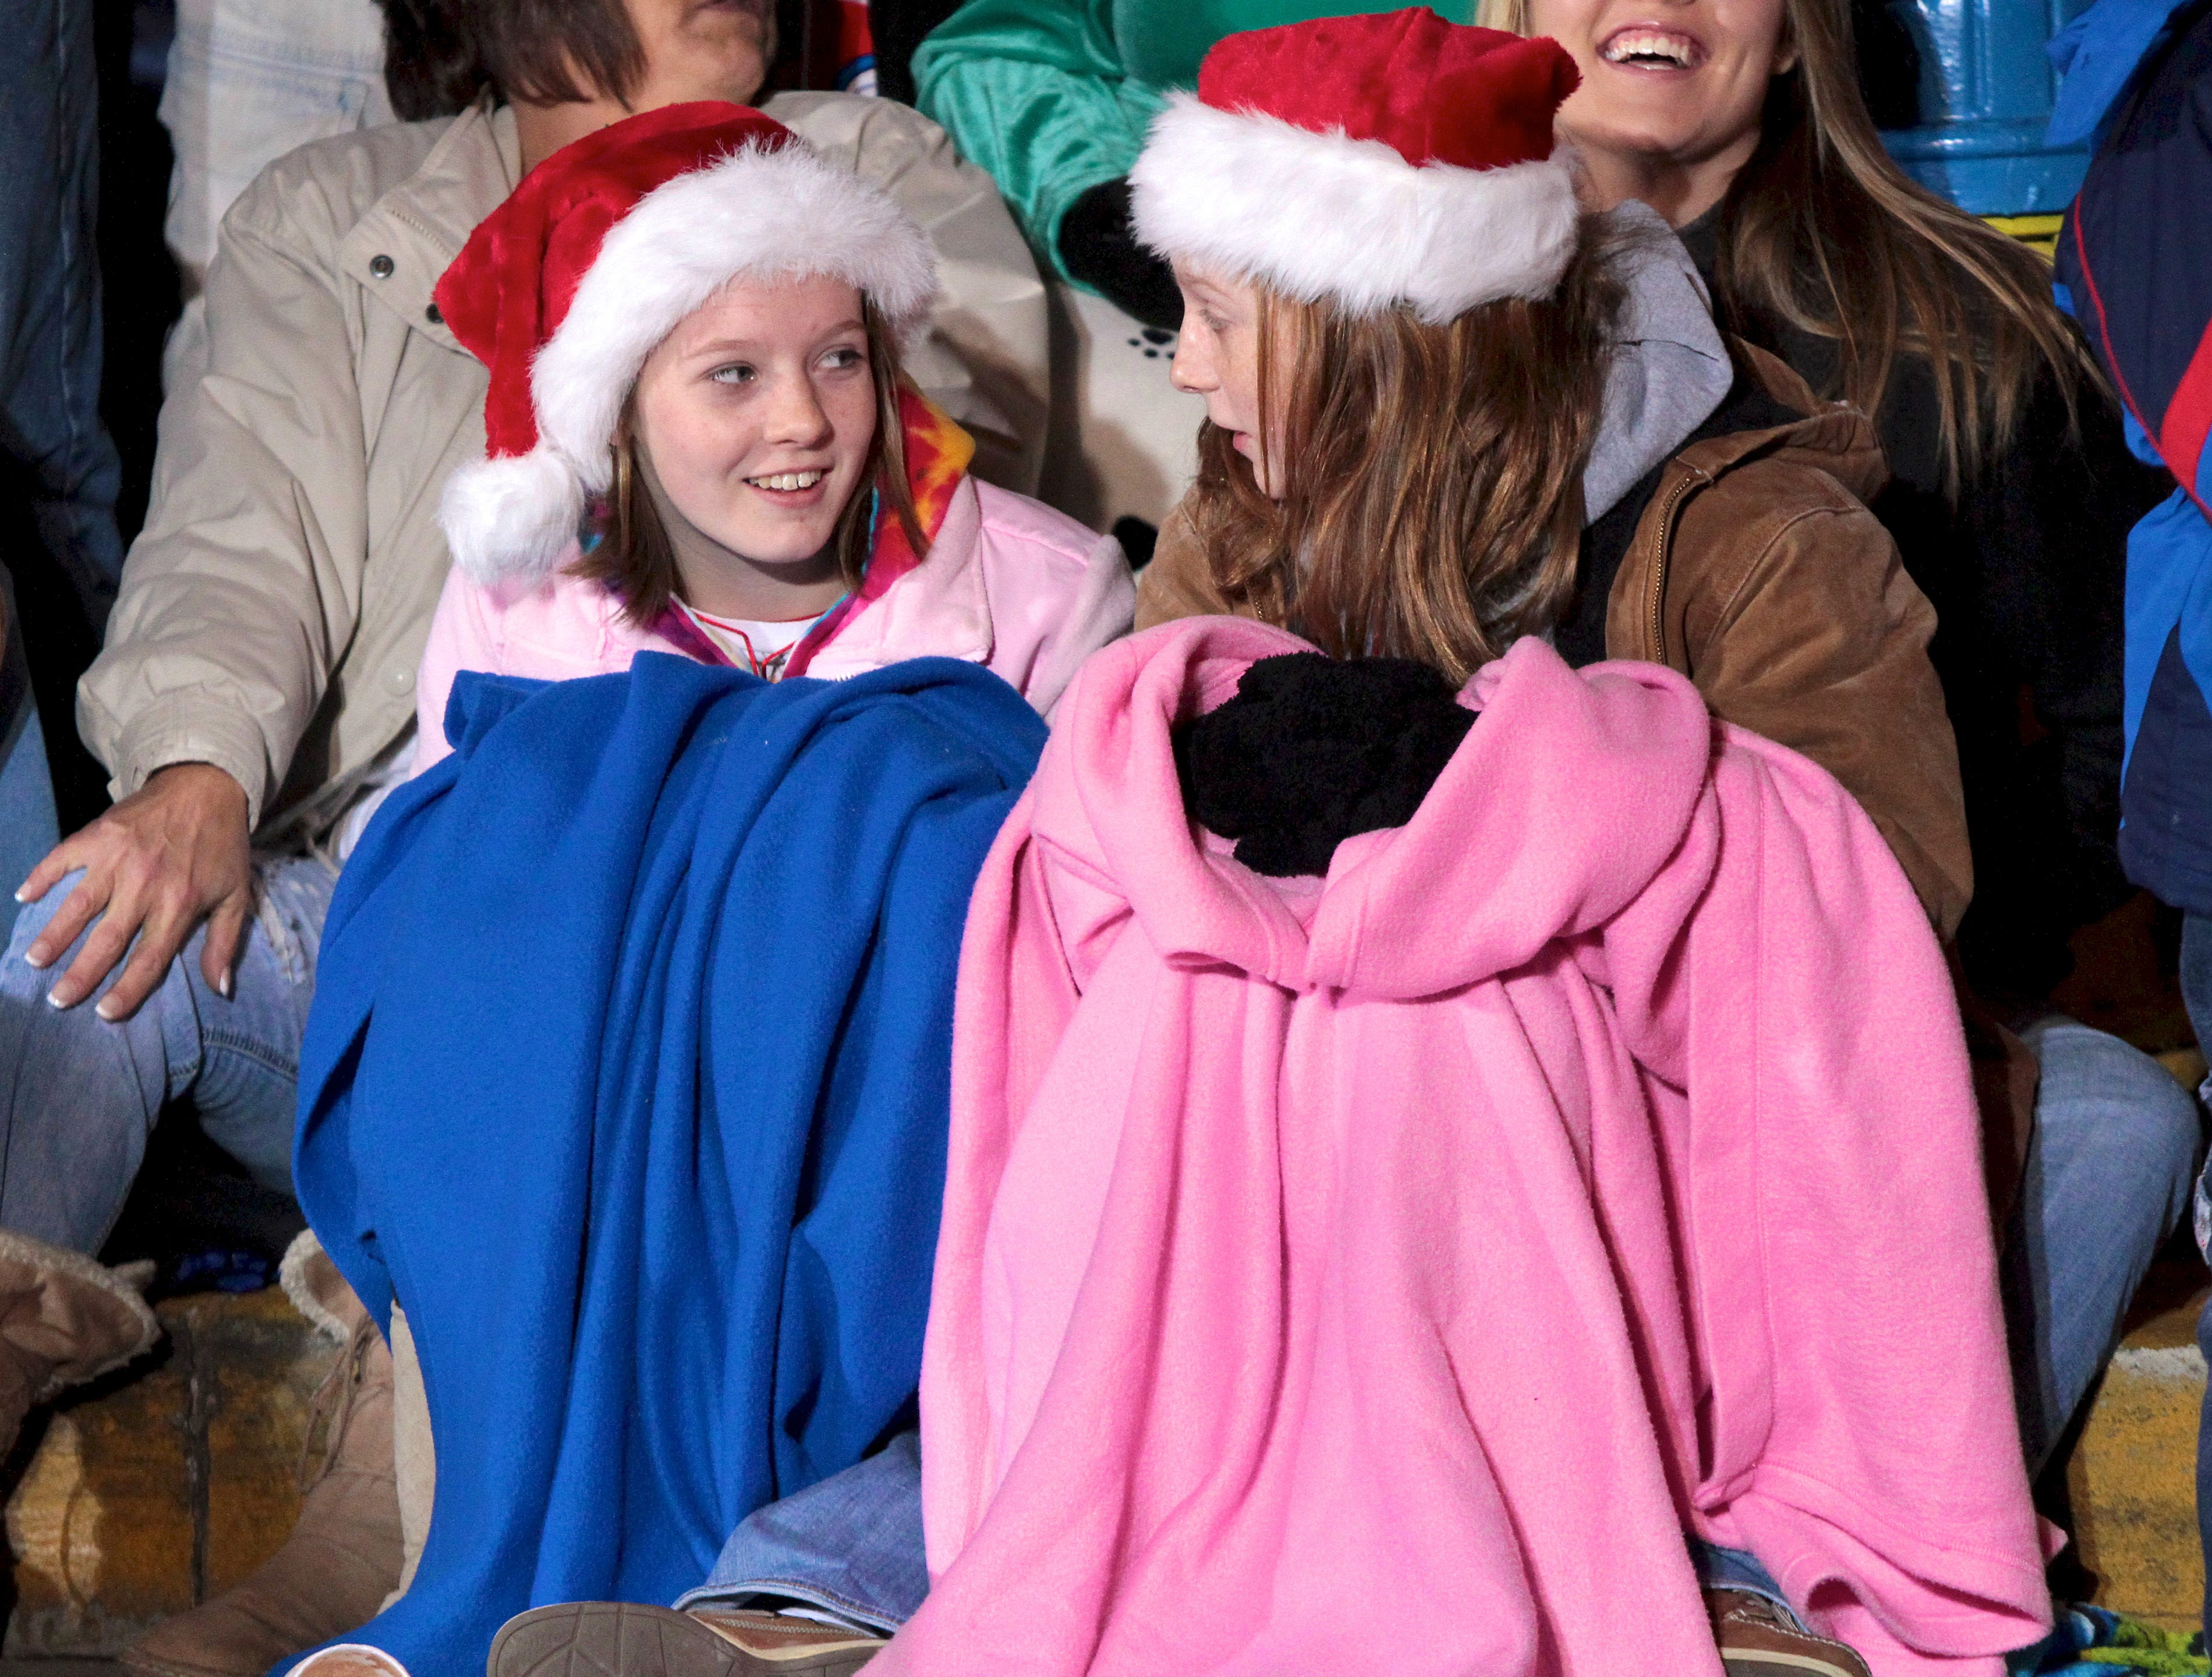 Hannah Byrd, 12, left, and Haley Pierce, 12, share a laugh during the annual Knoxville Christmas Parade on Friday, December 3, 2010.